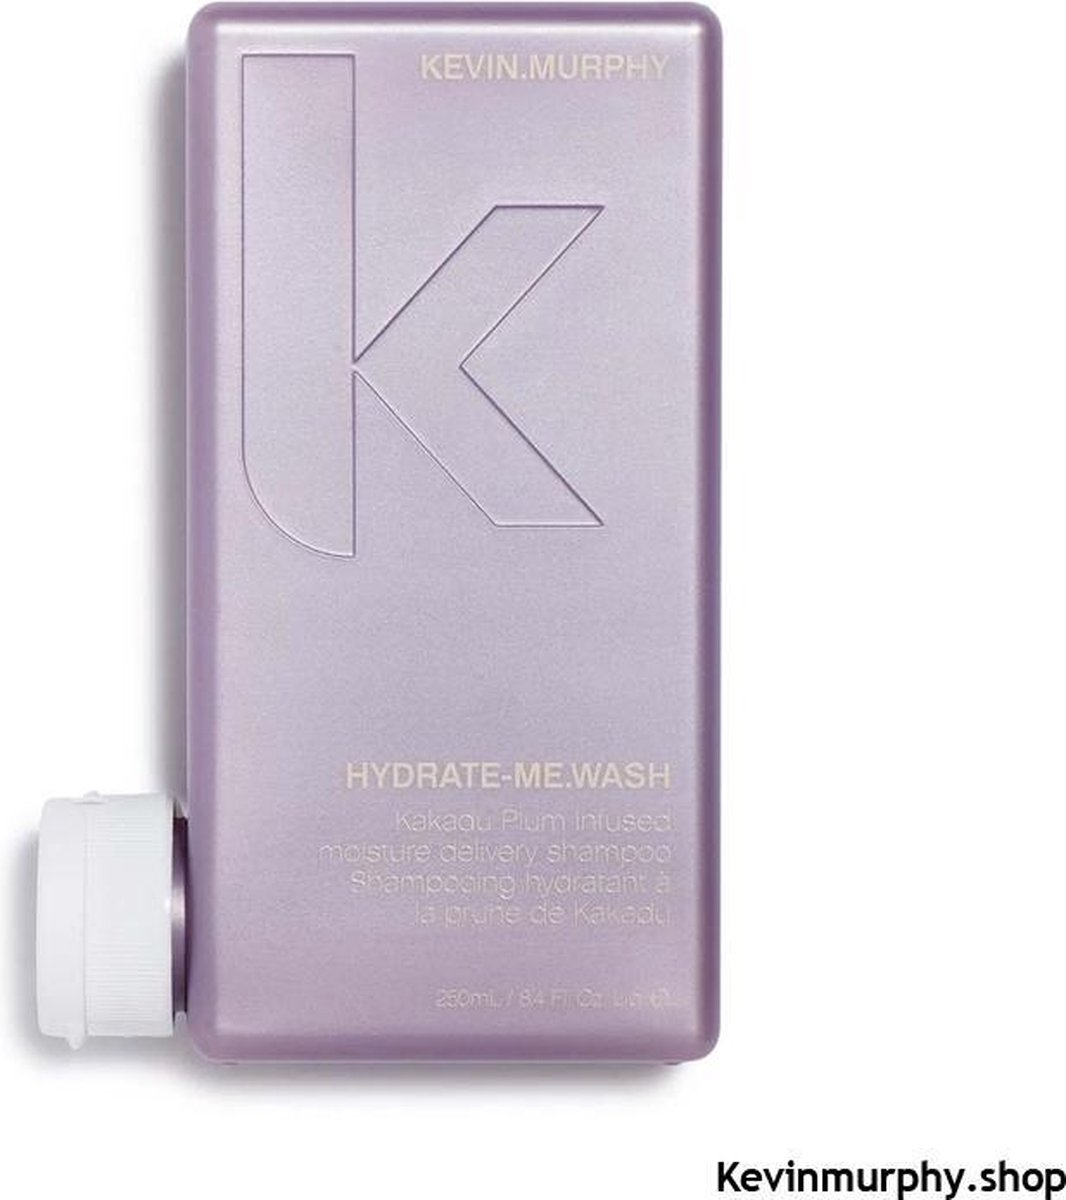 Kevin.Murphy HYDRATE-ME.WASH Unisex Voor consument Shampoo 240ml - KEVIN.MURPHY